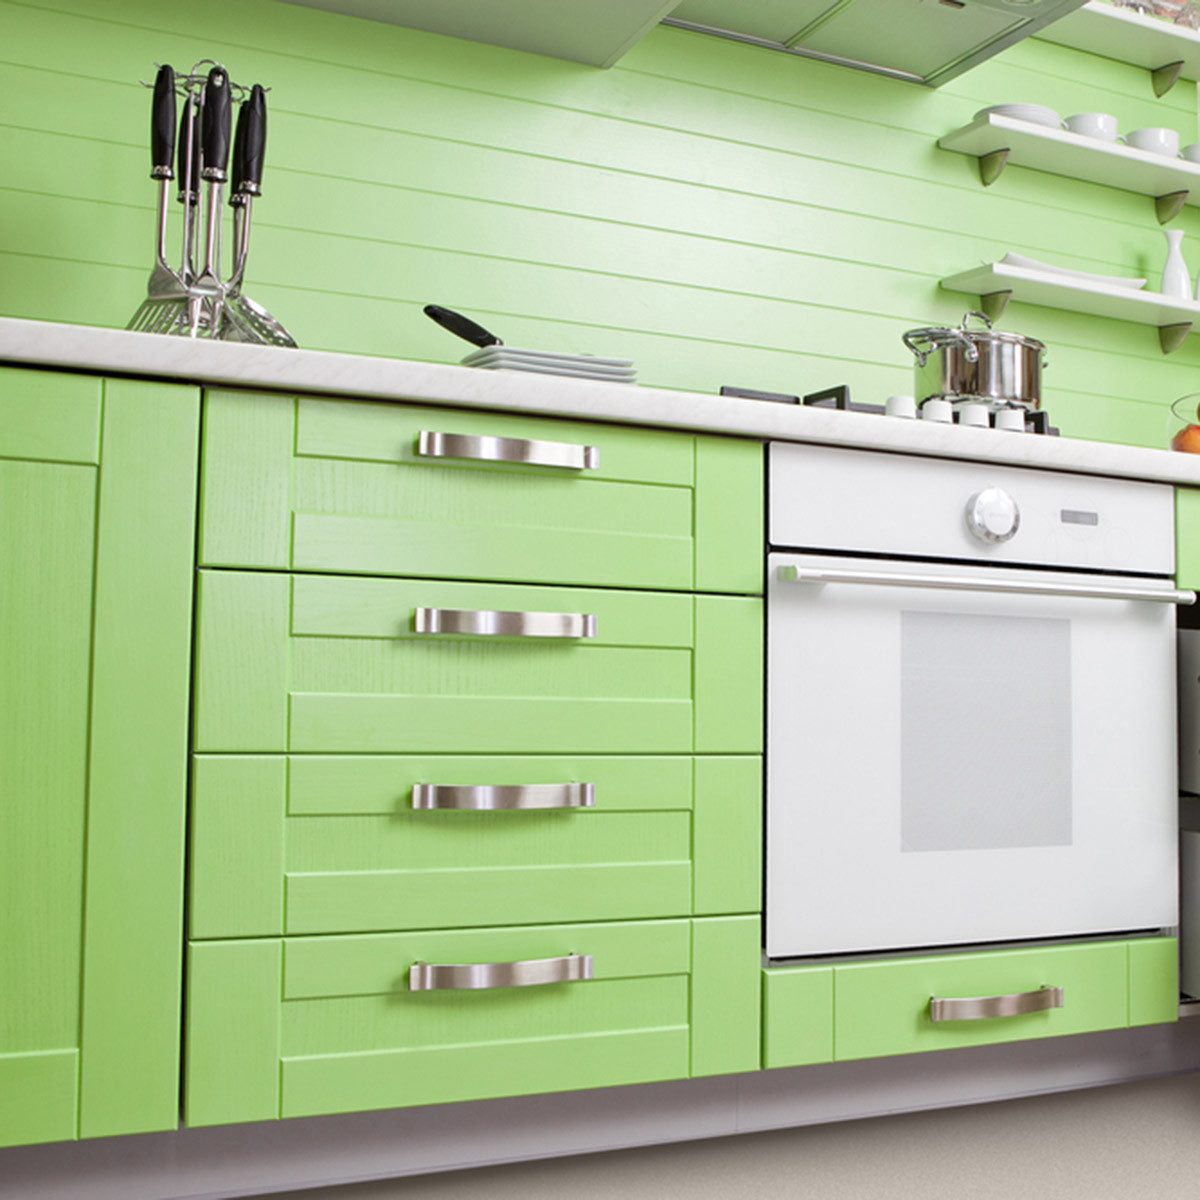 Popular Kitchen Cabinet Colors Trending Kitchen Cabinet Colors The Family Handyman